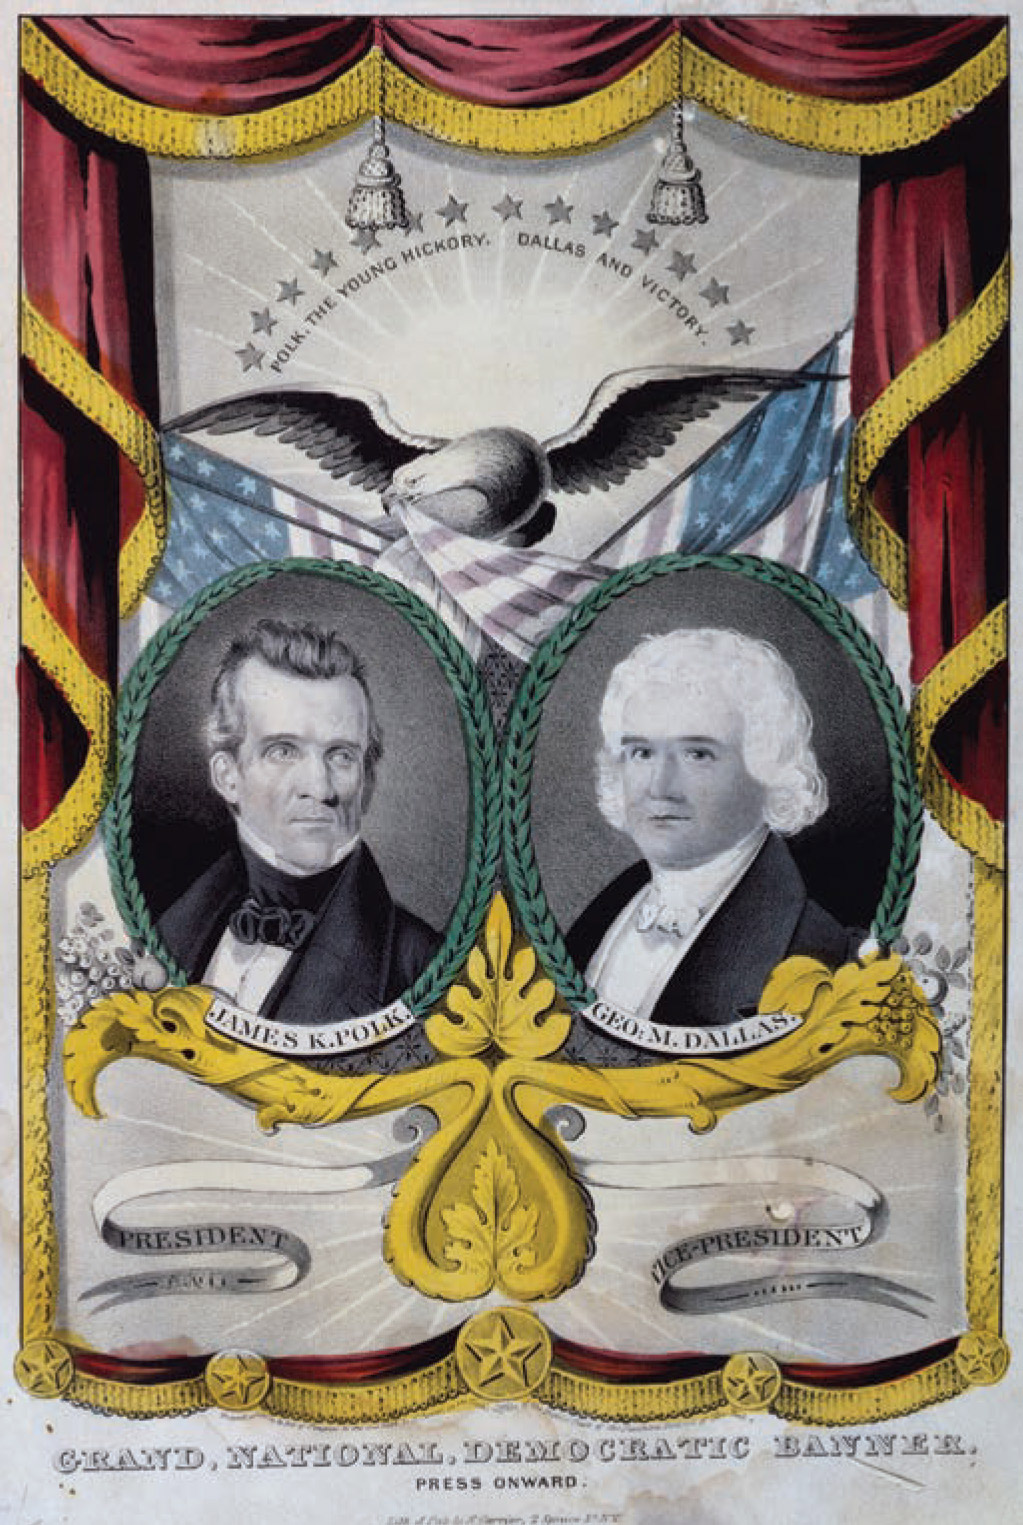 Grand National Democratic Banner. Nathaniel Currier, 1844. The first political banner.